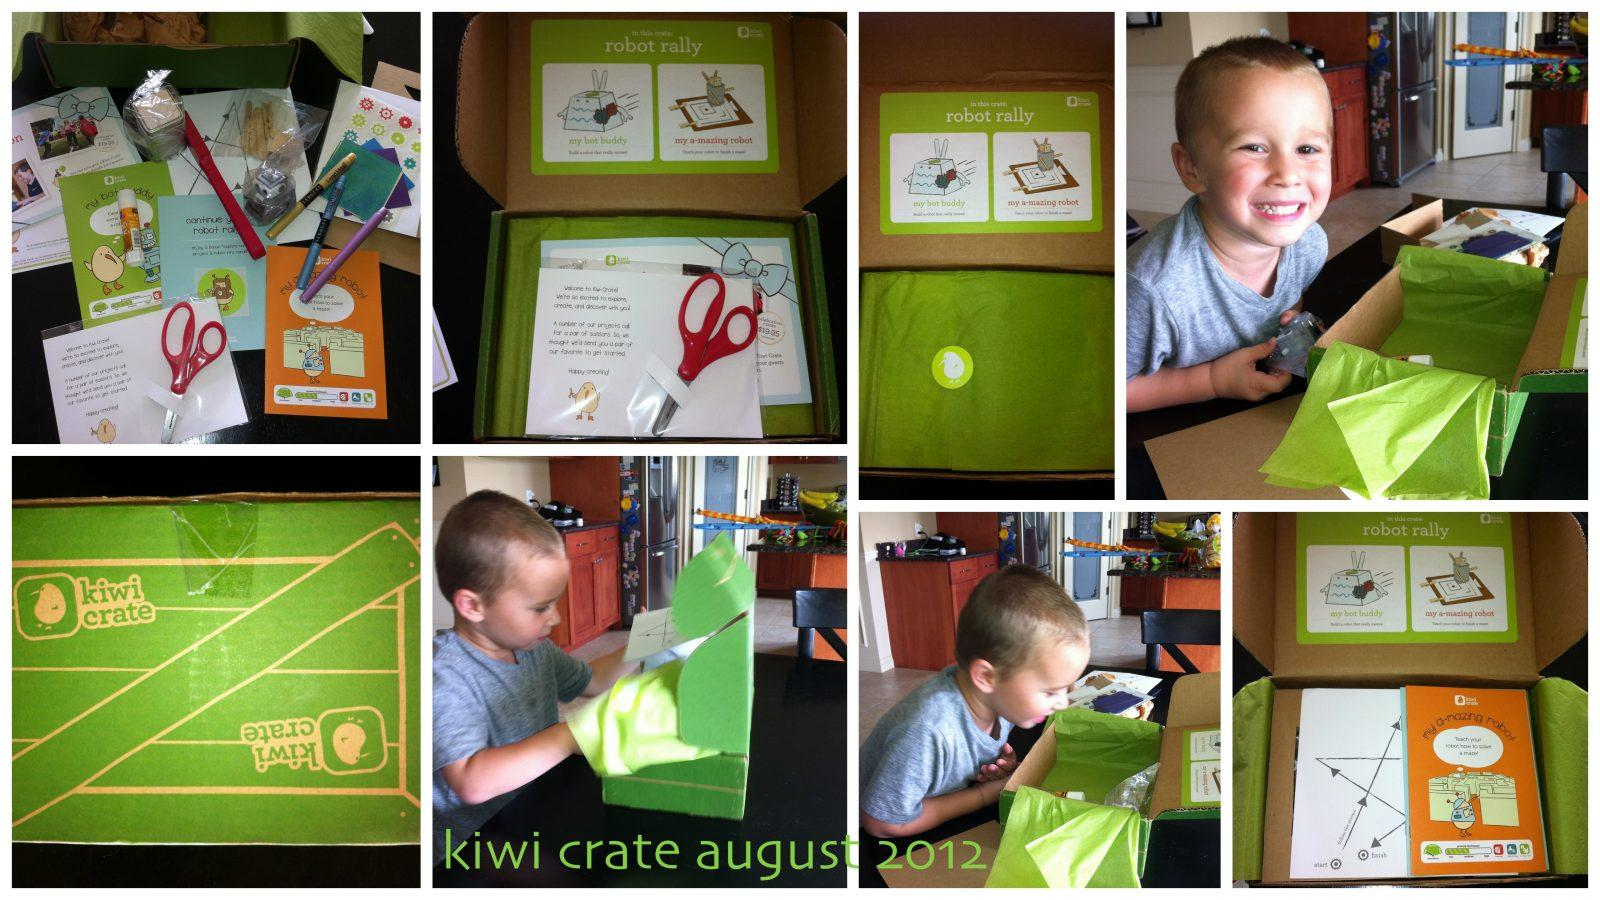 Kiwi Crate Review + Coupon Code – August 2012